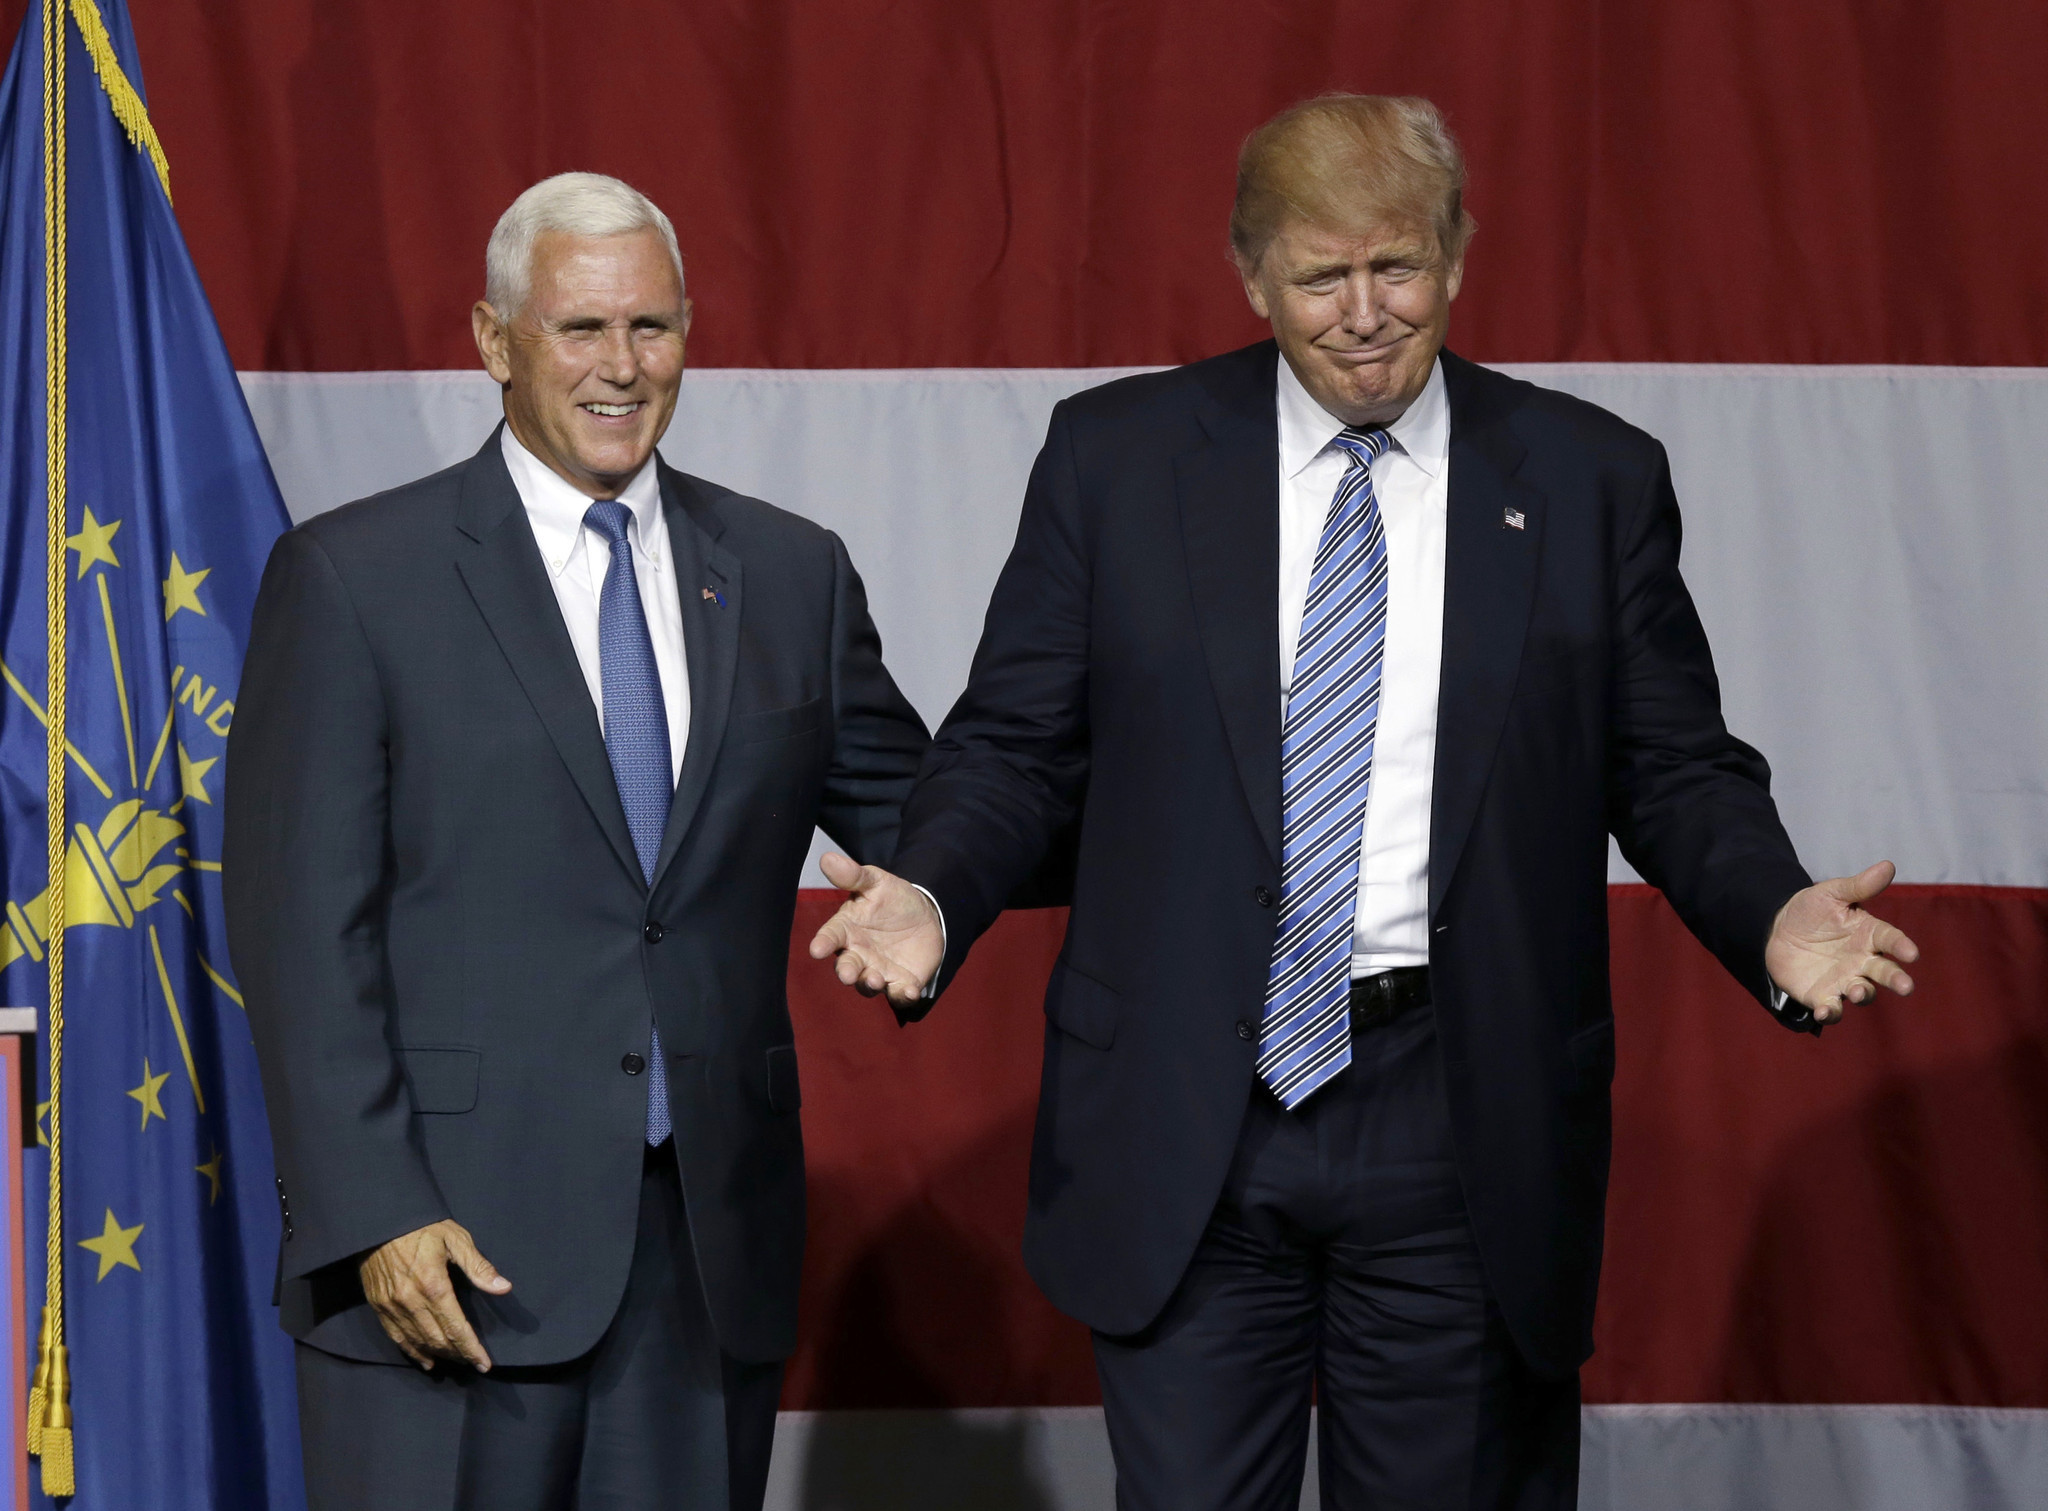 Pence introduces Trump at Indiana rally that doubles as VP audition